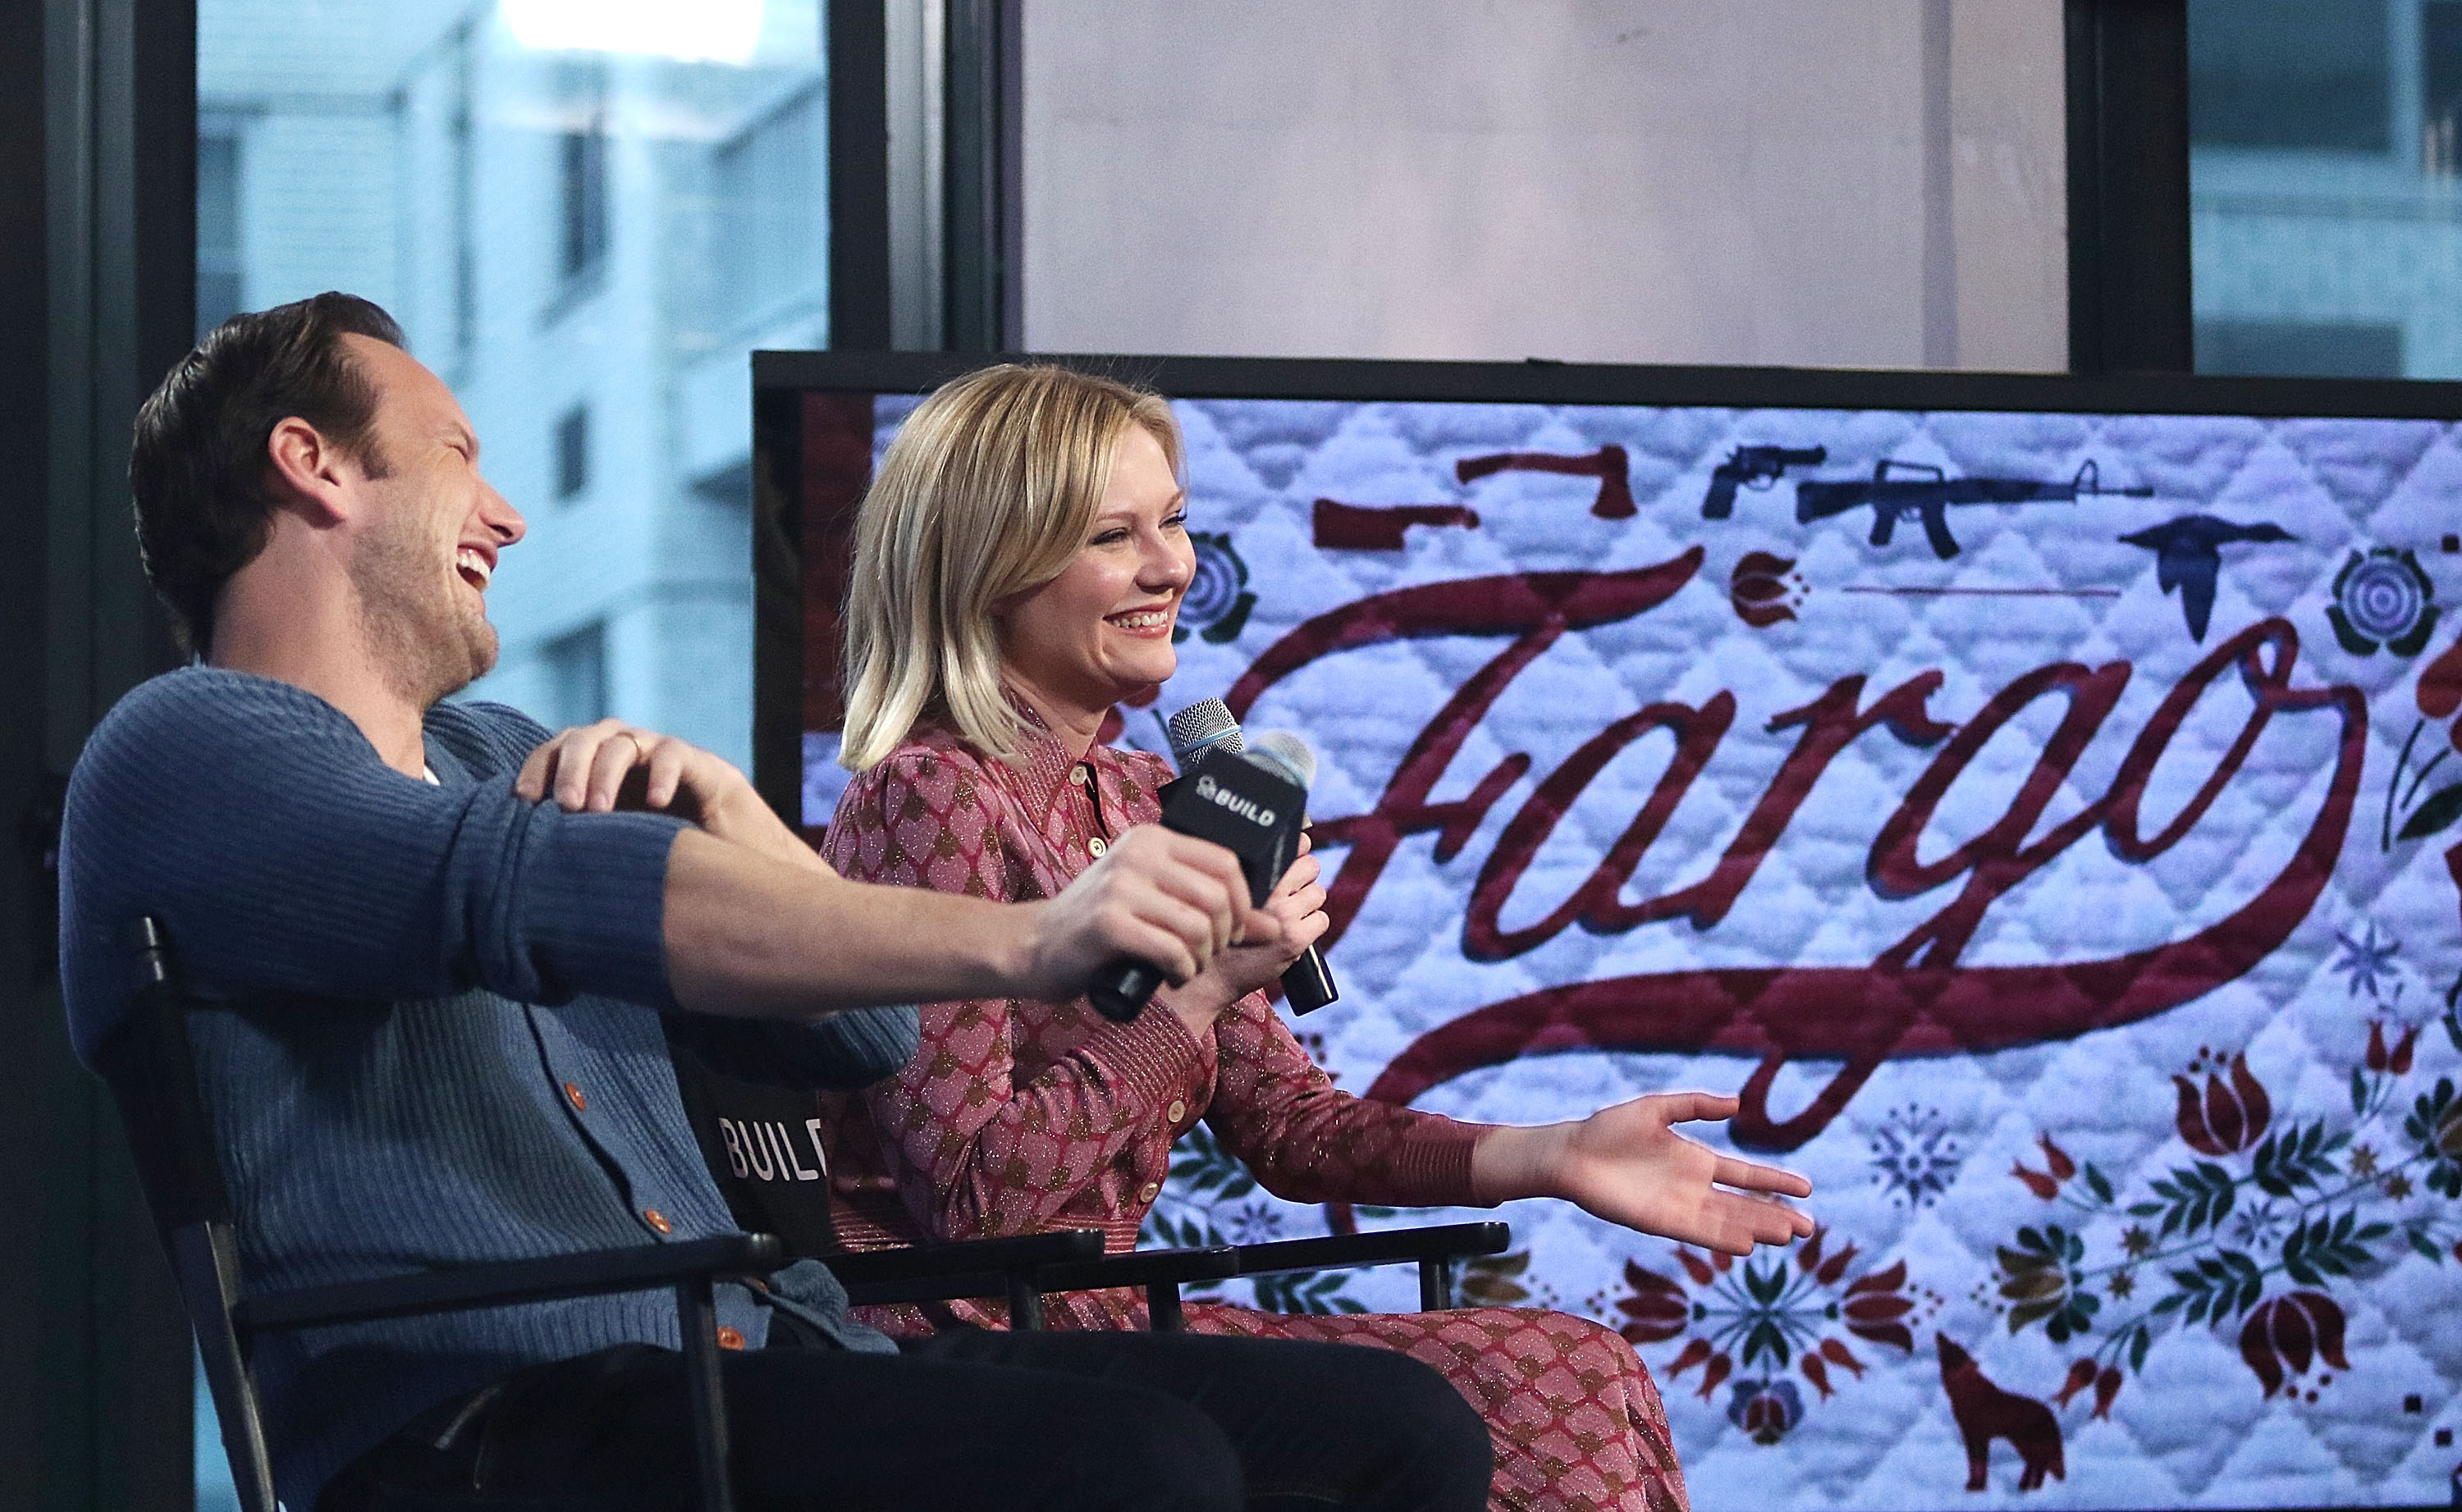 Kirsten Dunst and Patrick Wilson from 'Fargo' attend AOL BUILD Series on Dec. 11, 2015 in New York City.